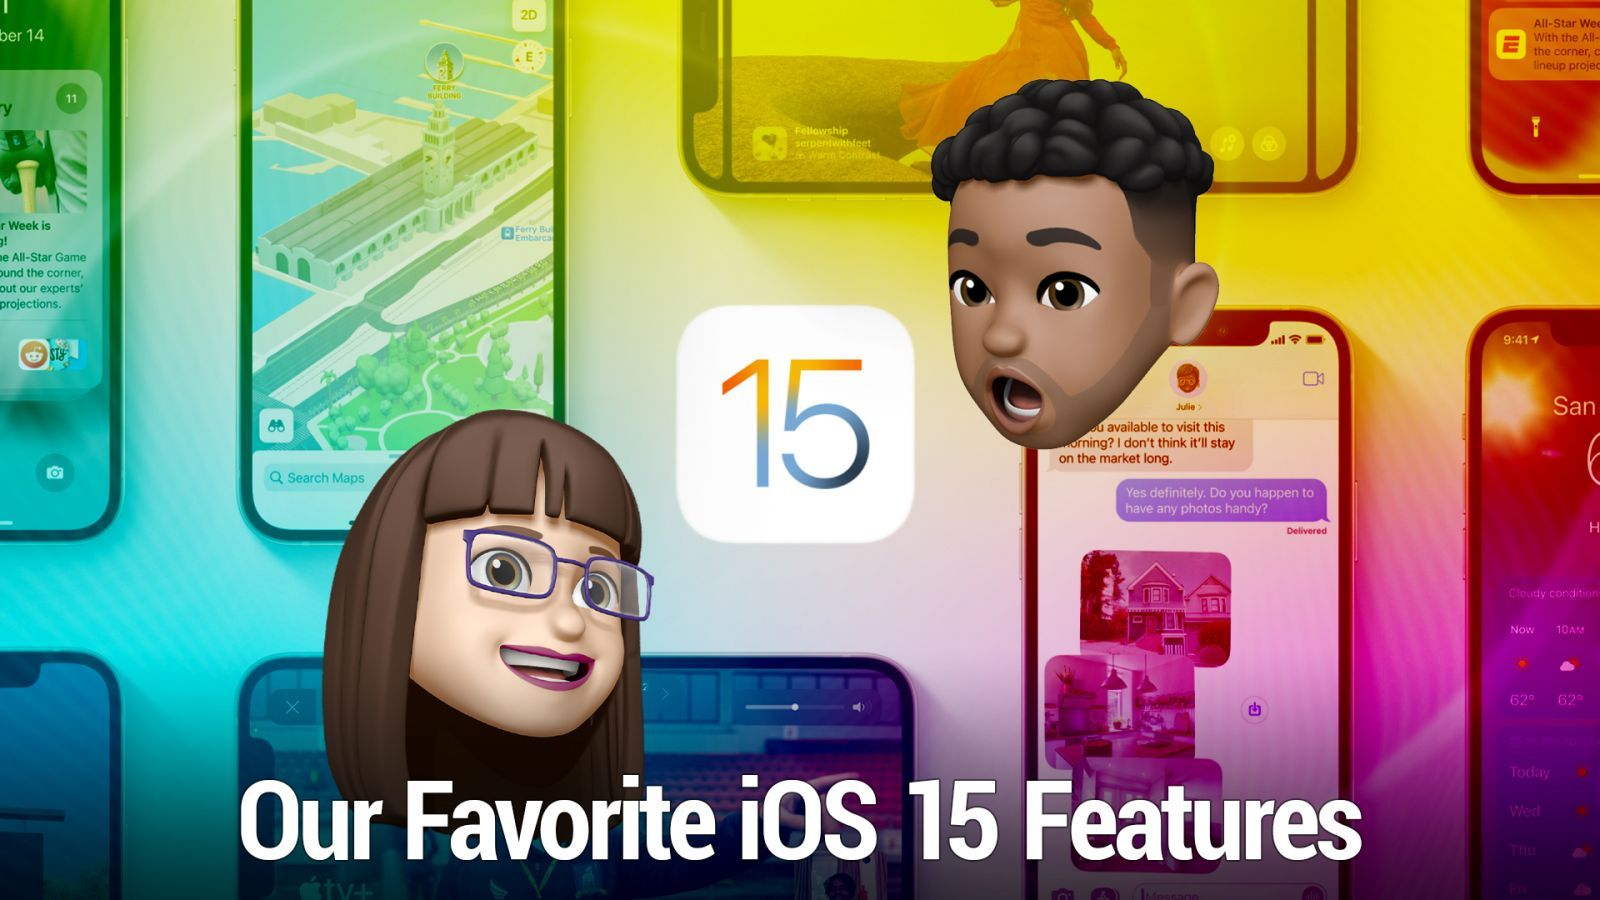 Our Favorite iOS 15 Features - Focus Modes, FaceTime Links, Safari redesign, iCloud+, and more